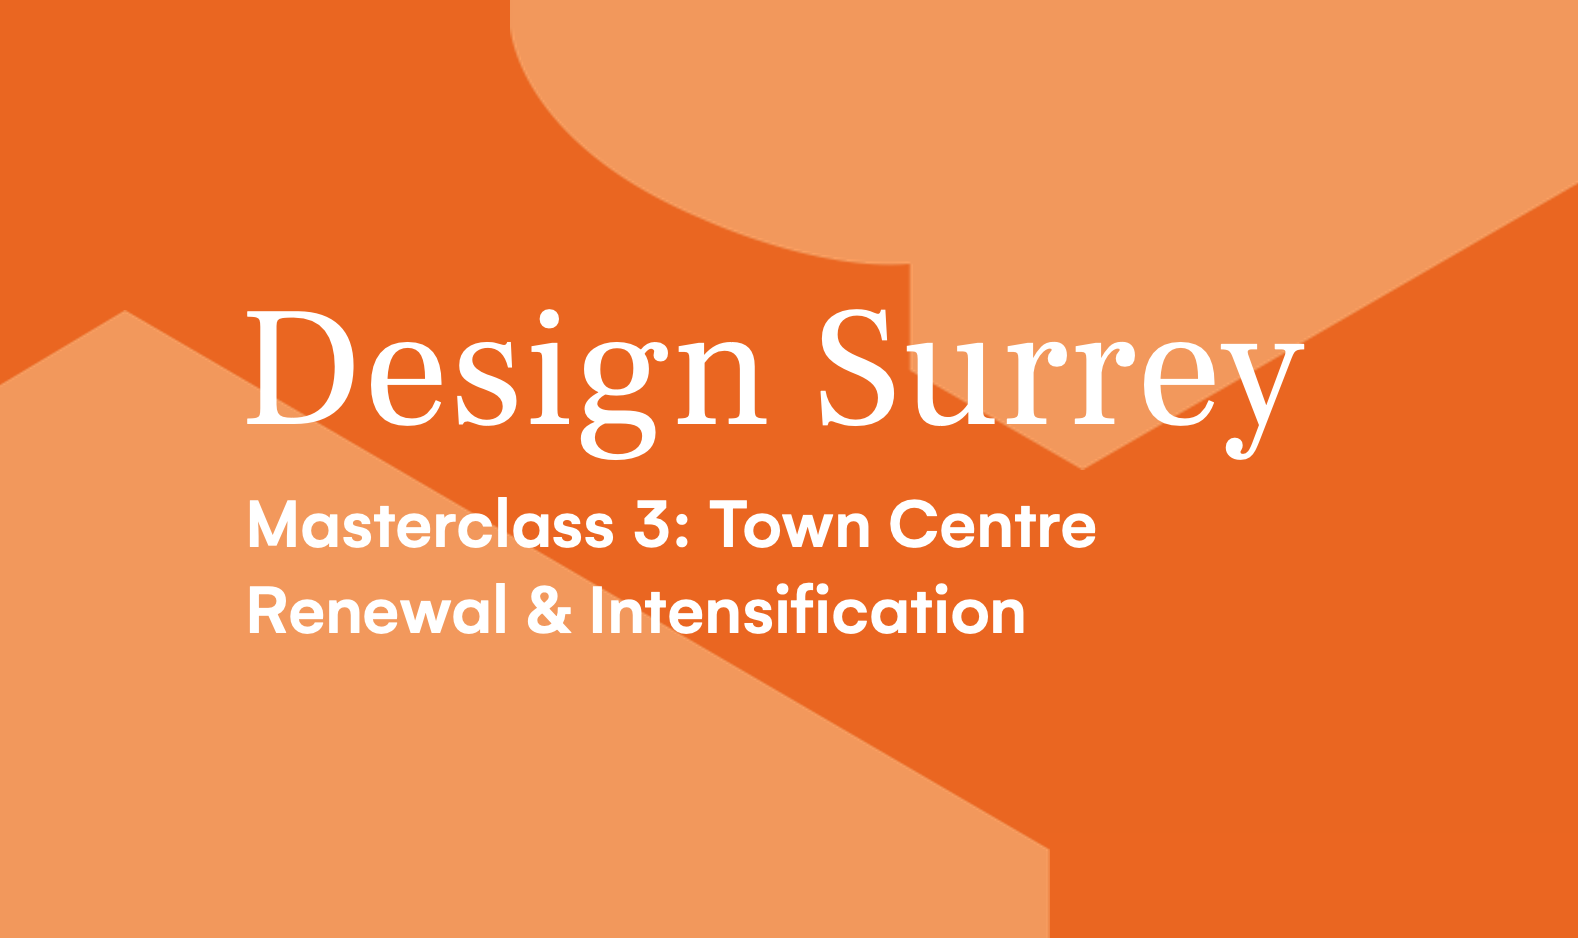 Design South East — Masterclass 3: Town Centre Renewal & Intensification